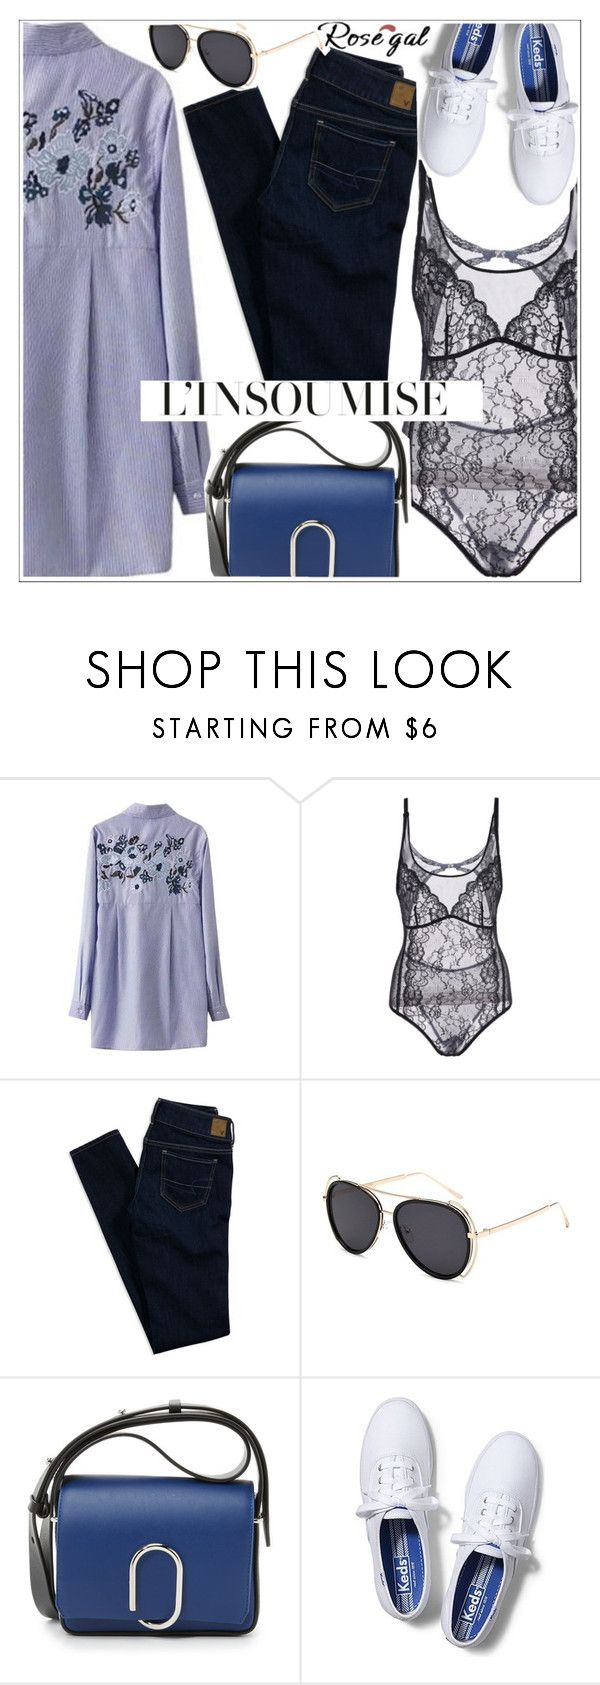 """""""Rosegal"""" by teoecar ❤ liked on Polyvore featuring American Eagle Outfitters, 3.1 Phillip Lim and Keds"""